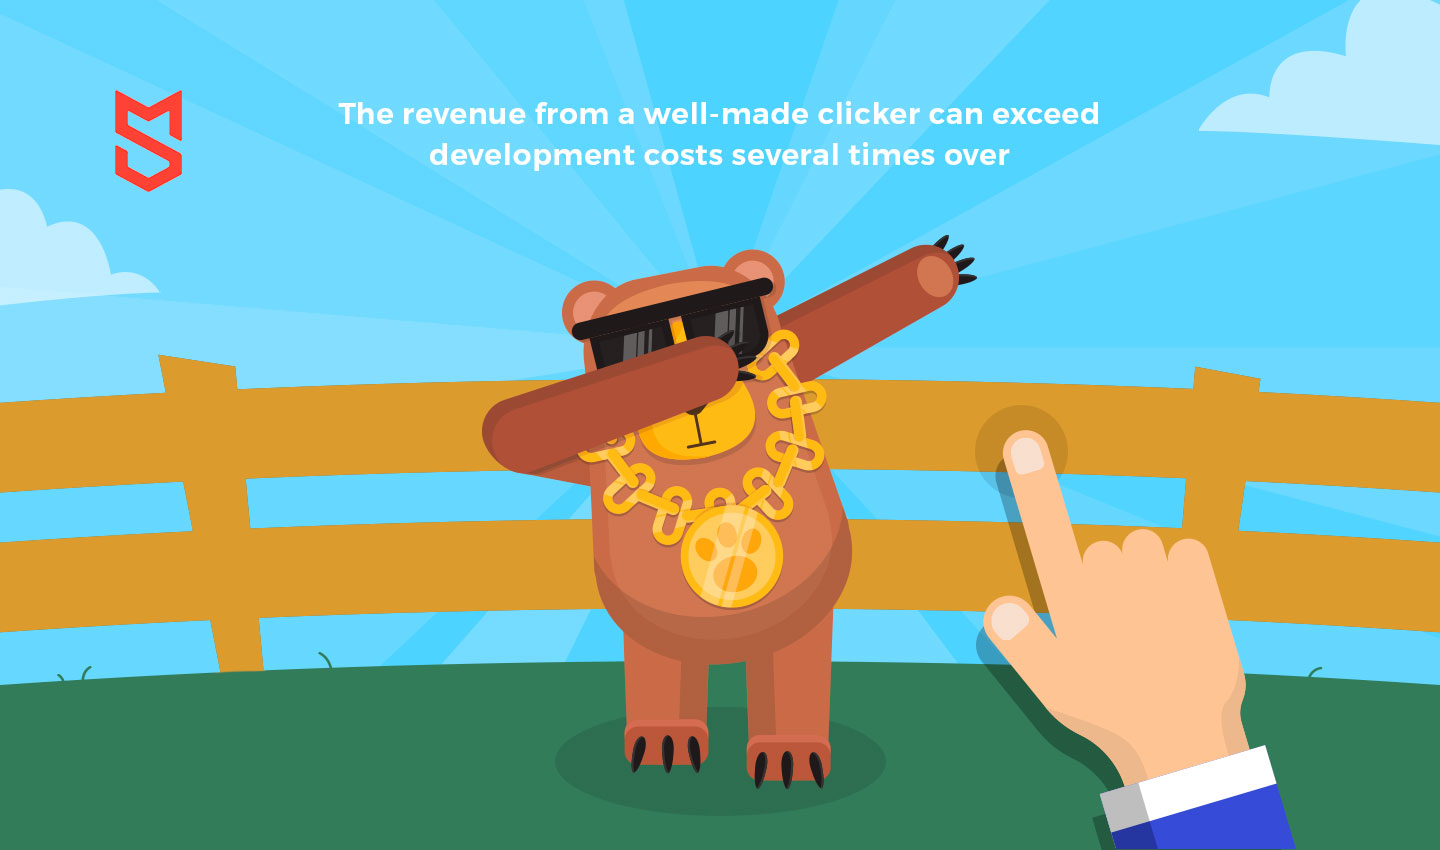 The revenue from a well-made clicker can exceed development costs several times over